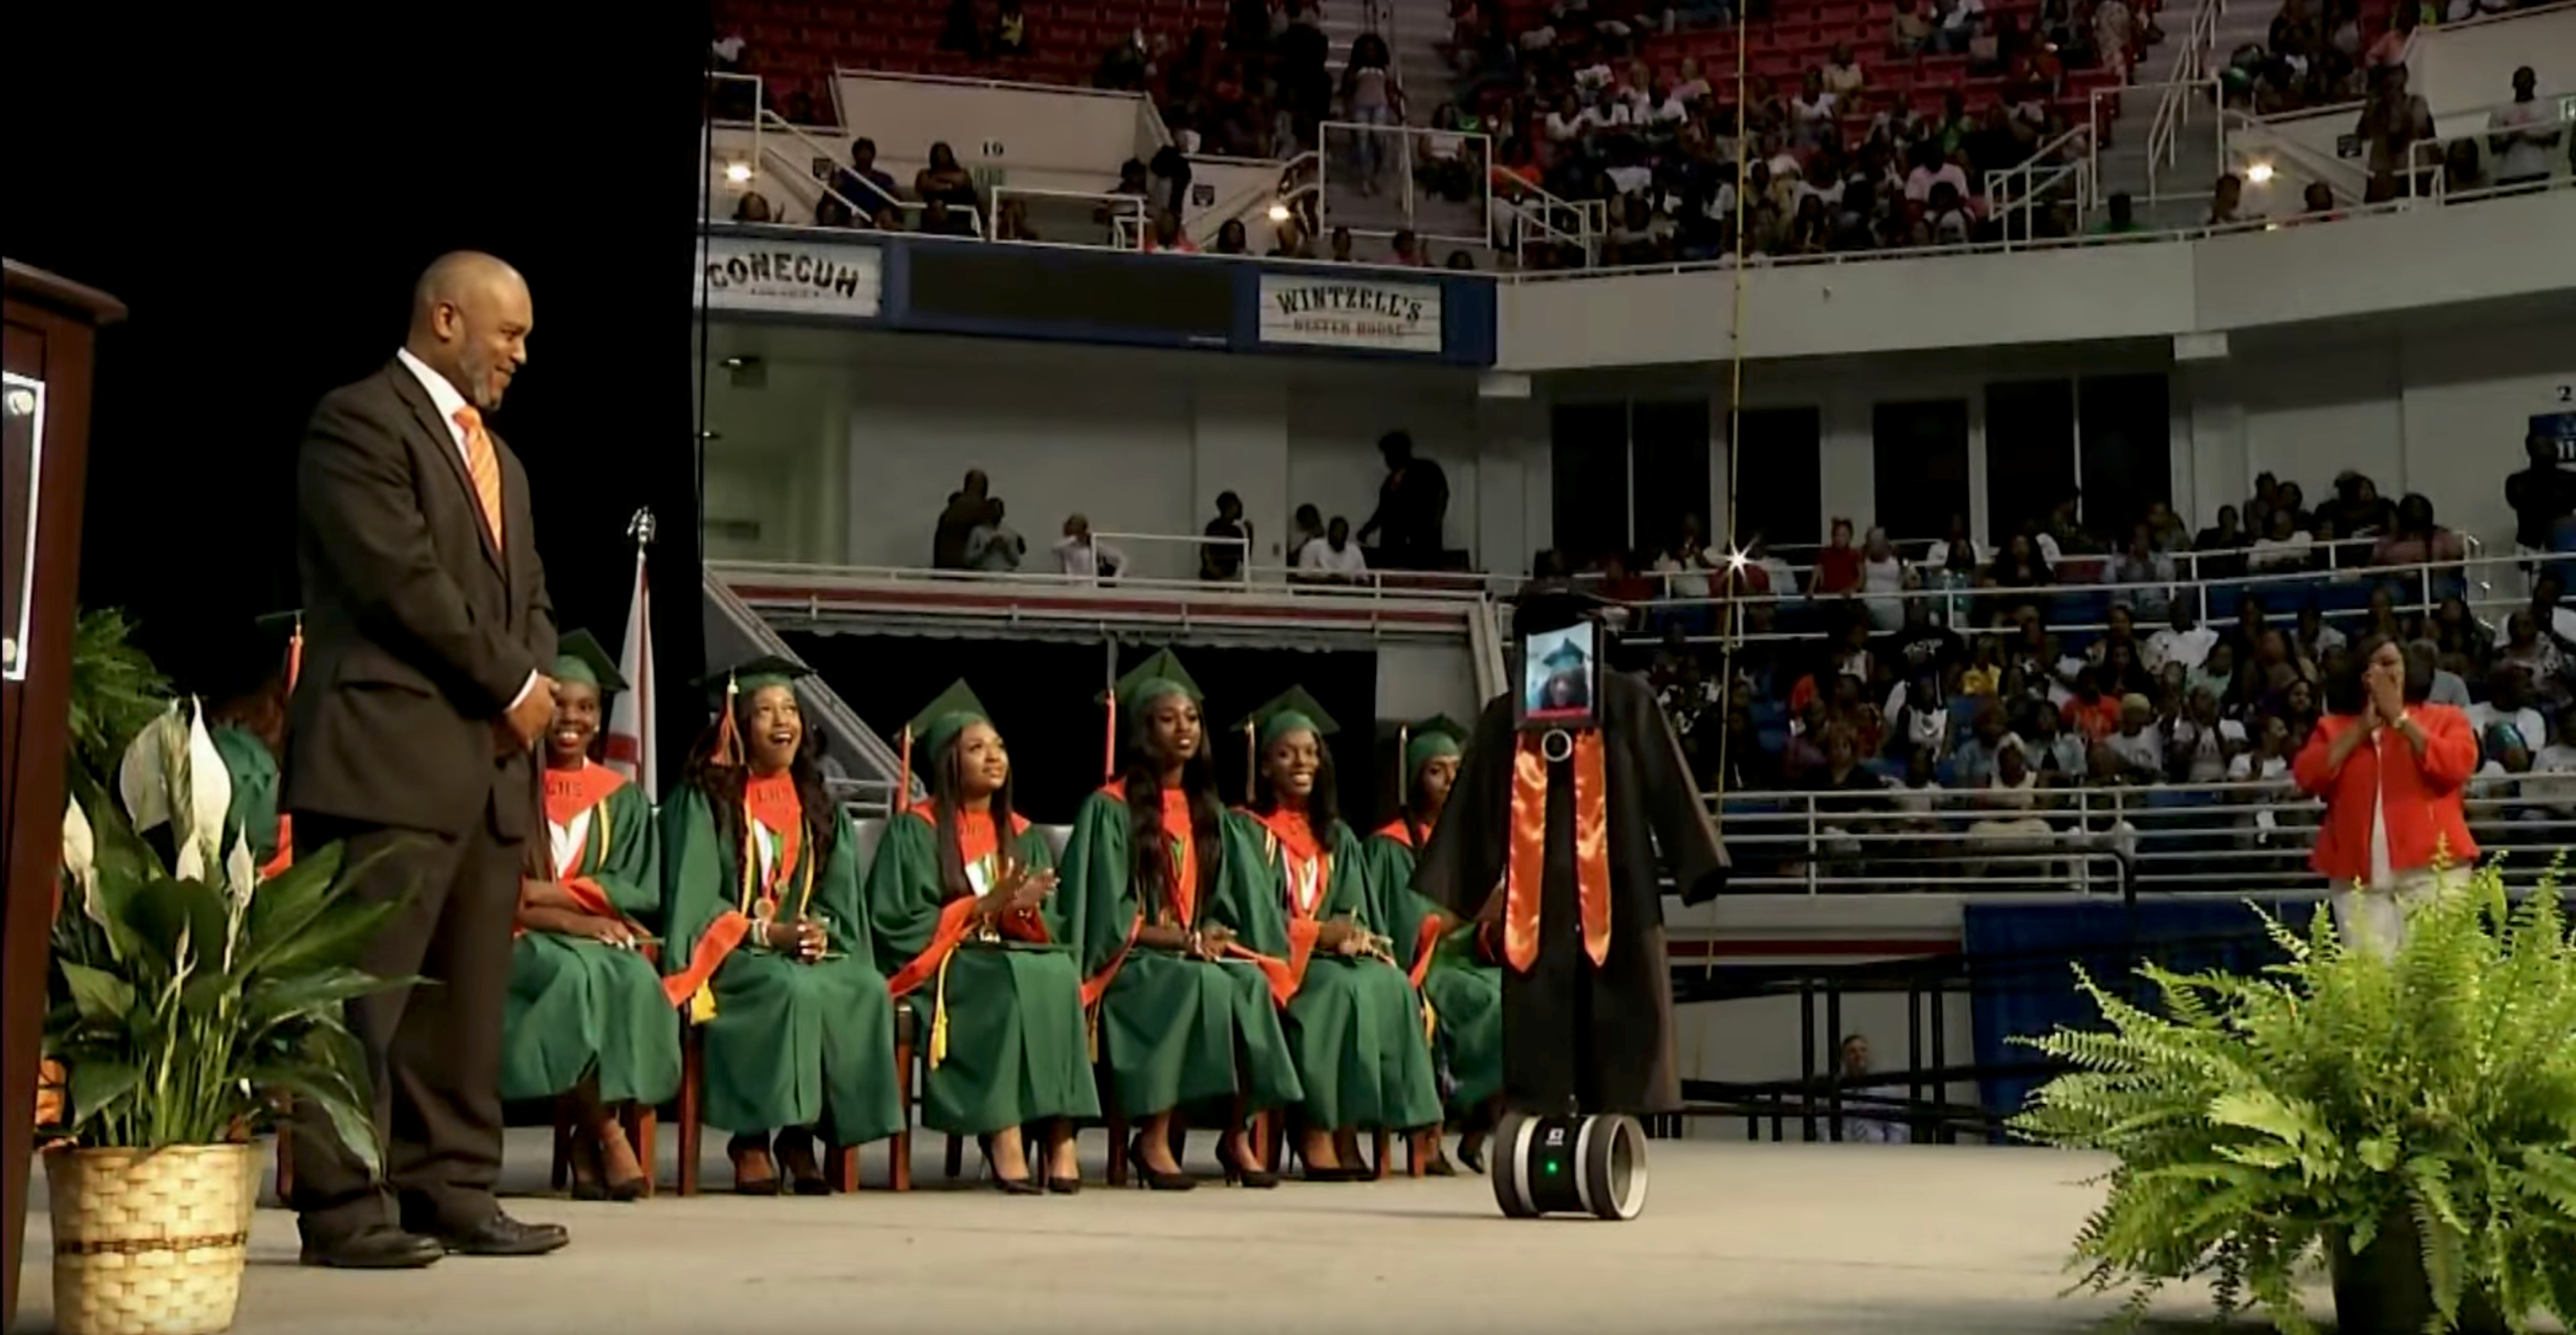 A robot bearing an iPad 'received' high school diploma for student Cynthia Pettway, who was unable to leave a hospital, in Mobile, Alabama on May 14, 2018.